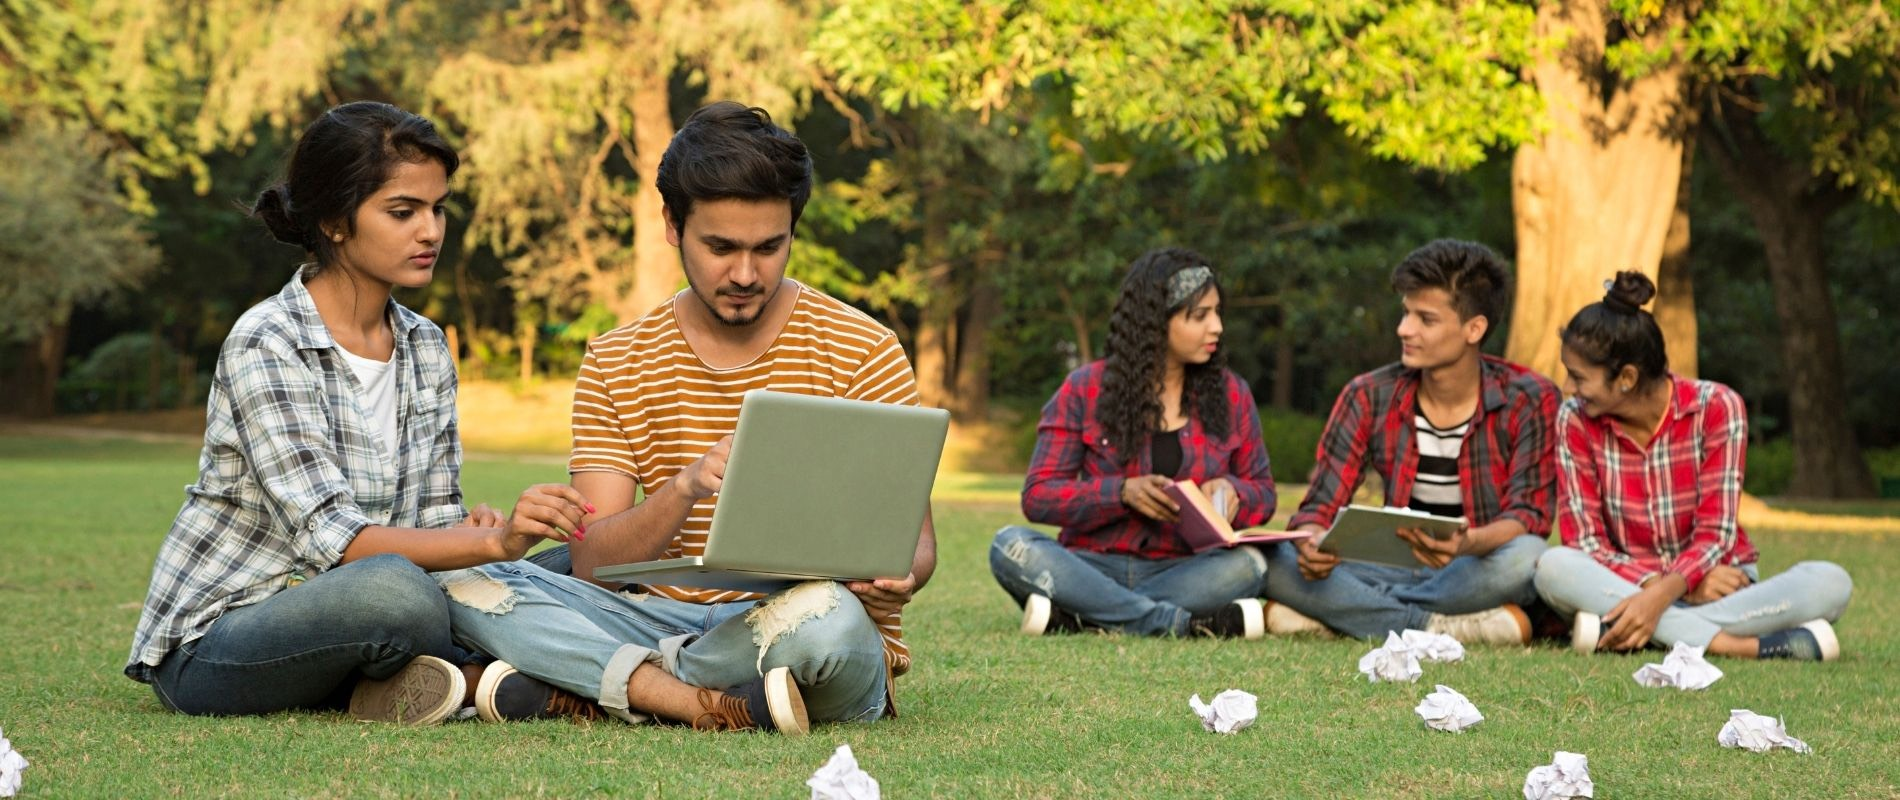 International student mobility from India to increase in 2021